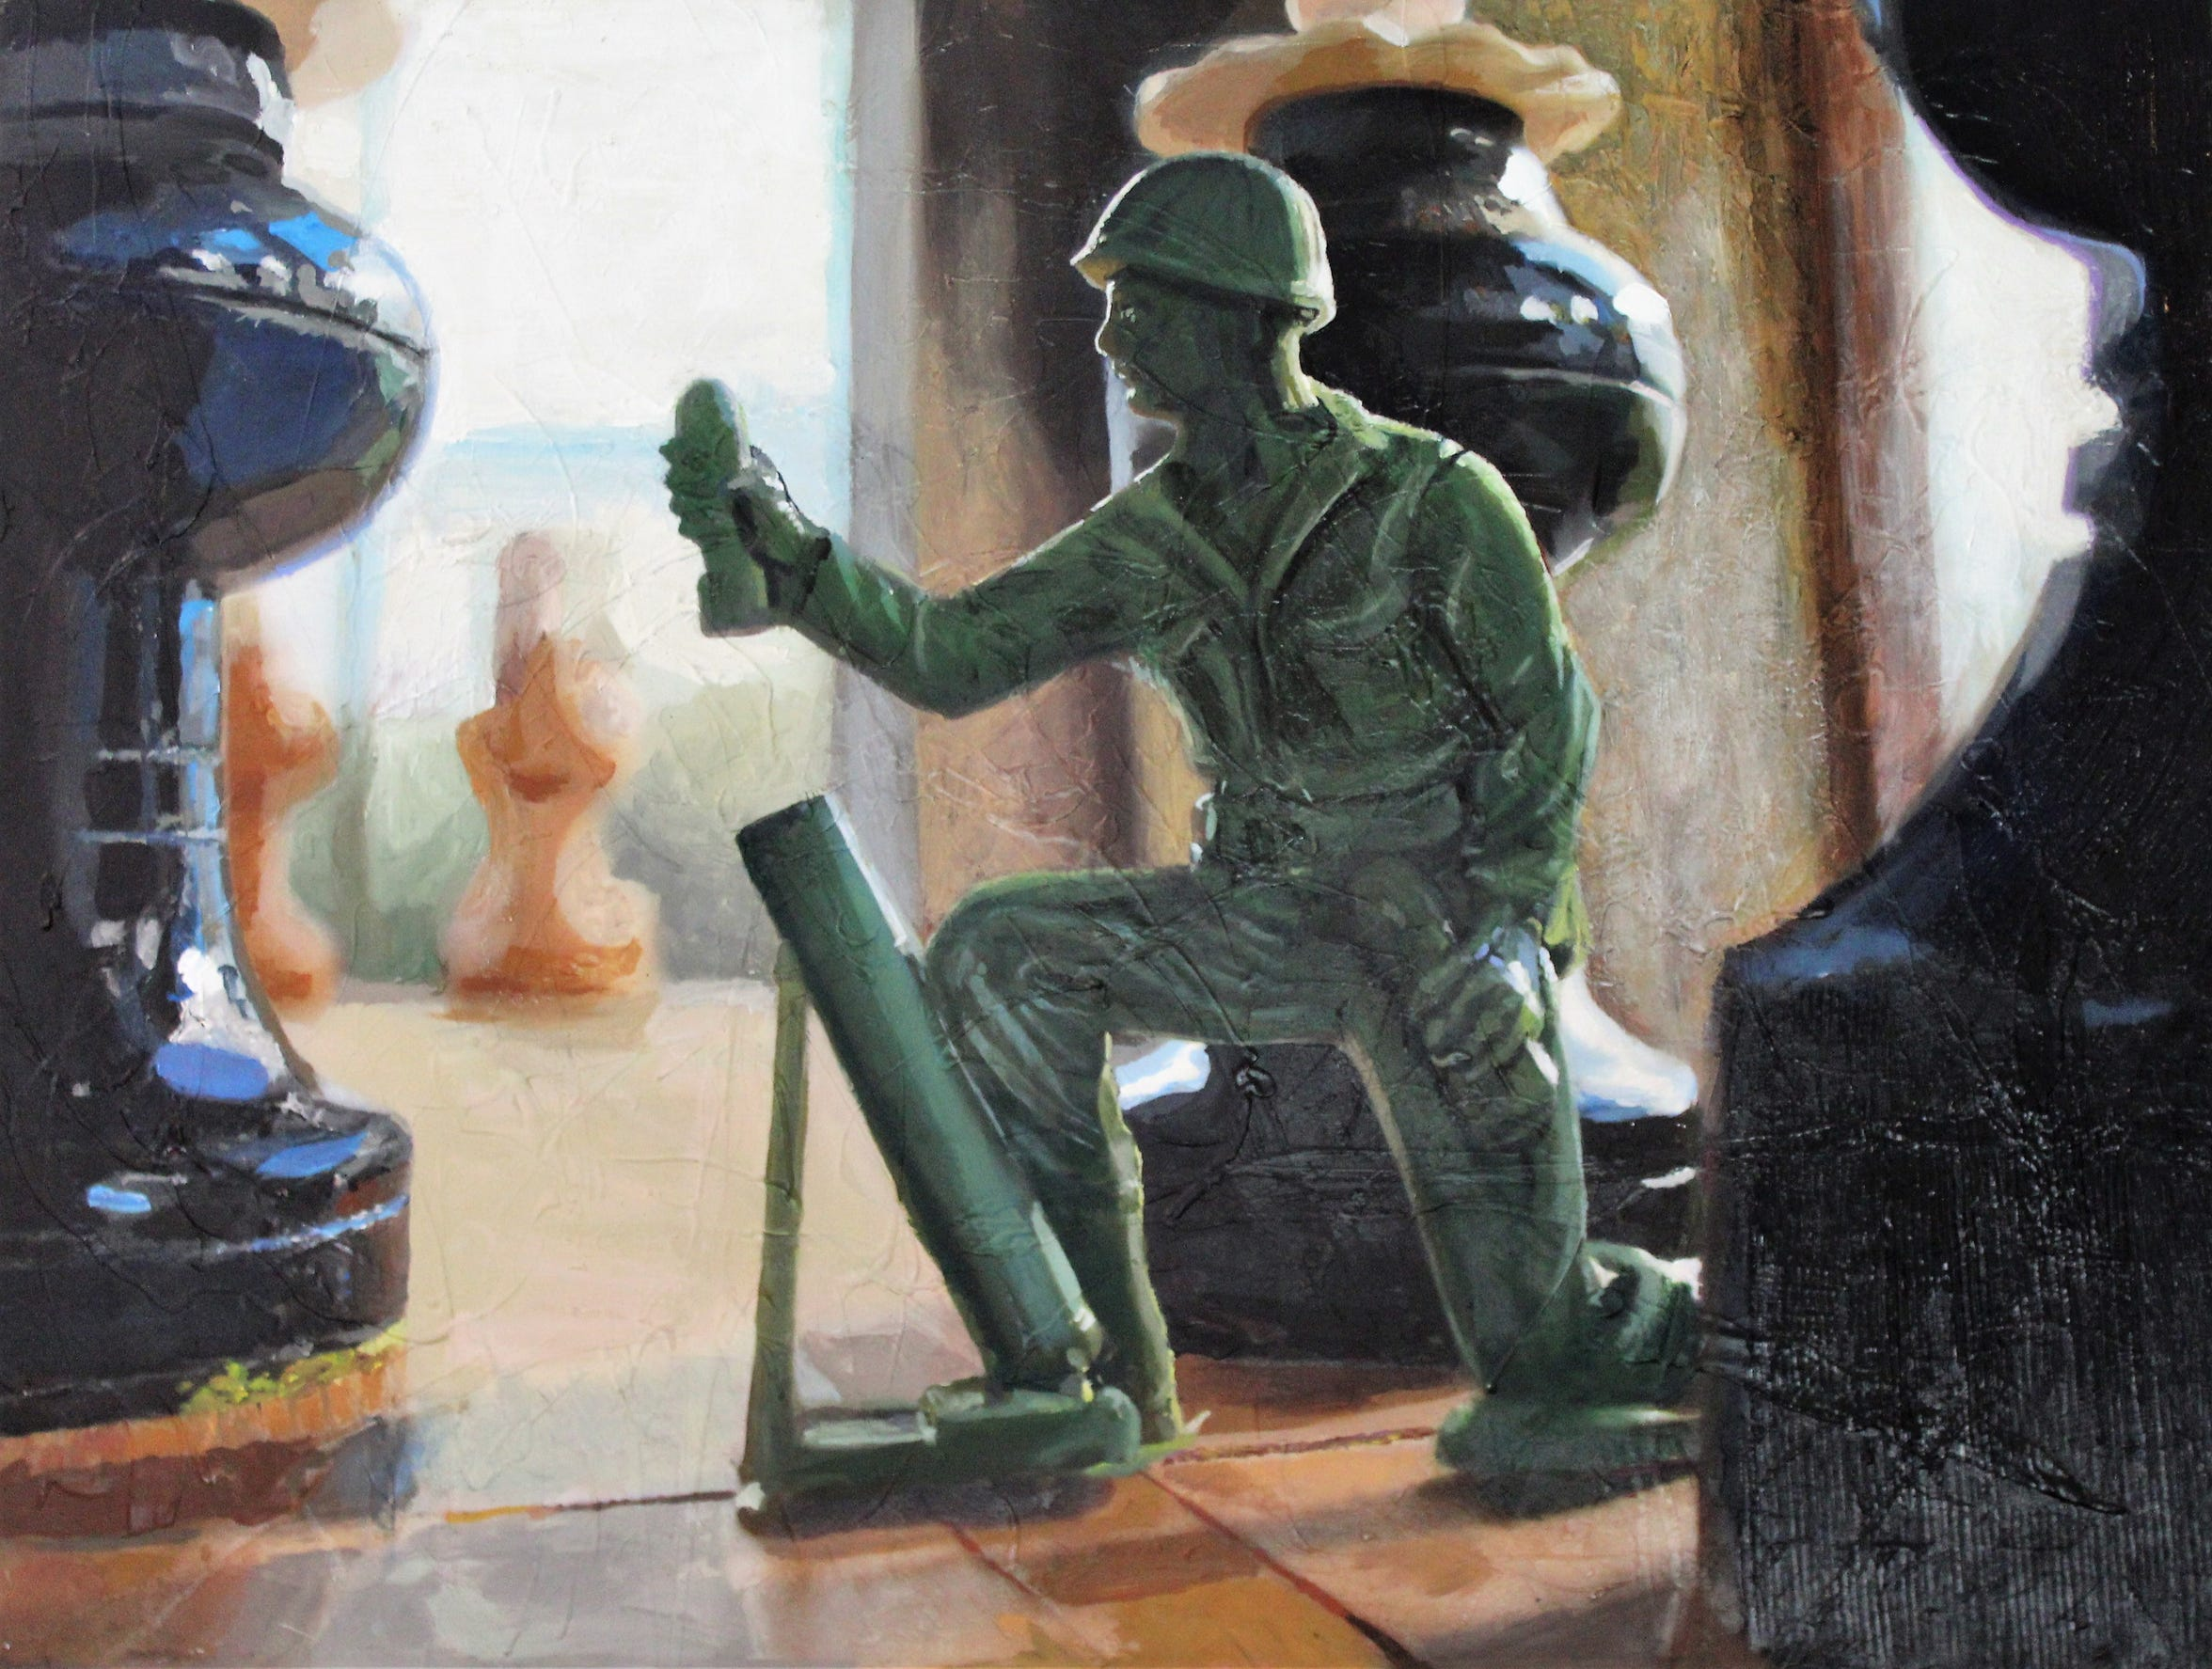 Matt Aston is a chess fan but playfully inserted an Army man onto the board in this painting.